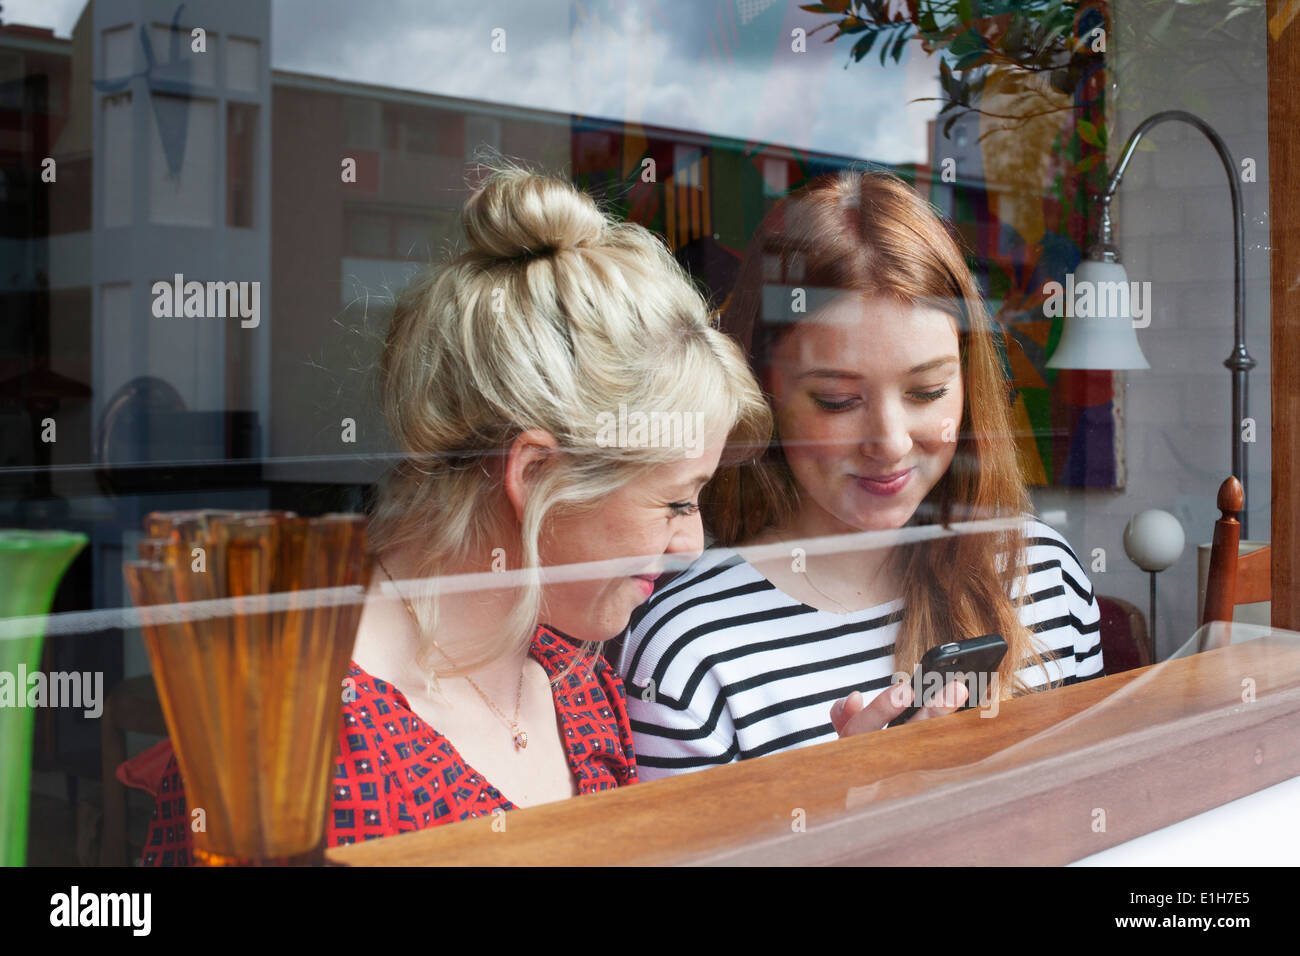 Young women through window, looking at smartphone Stock Photo